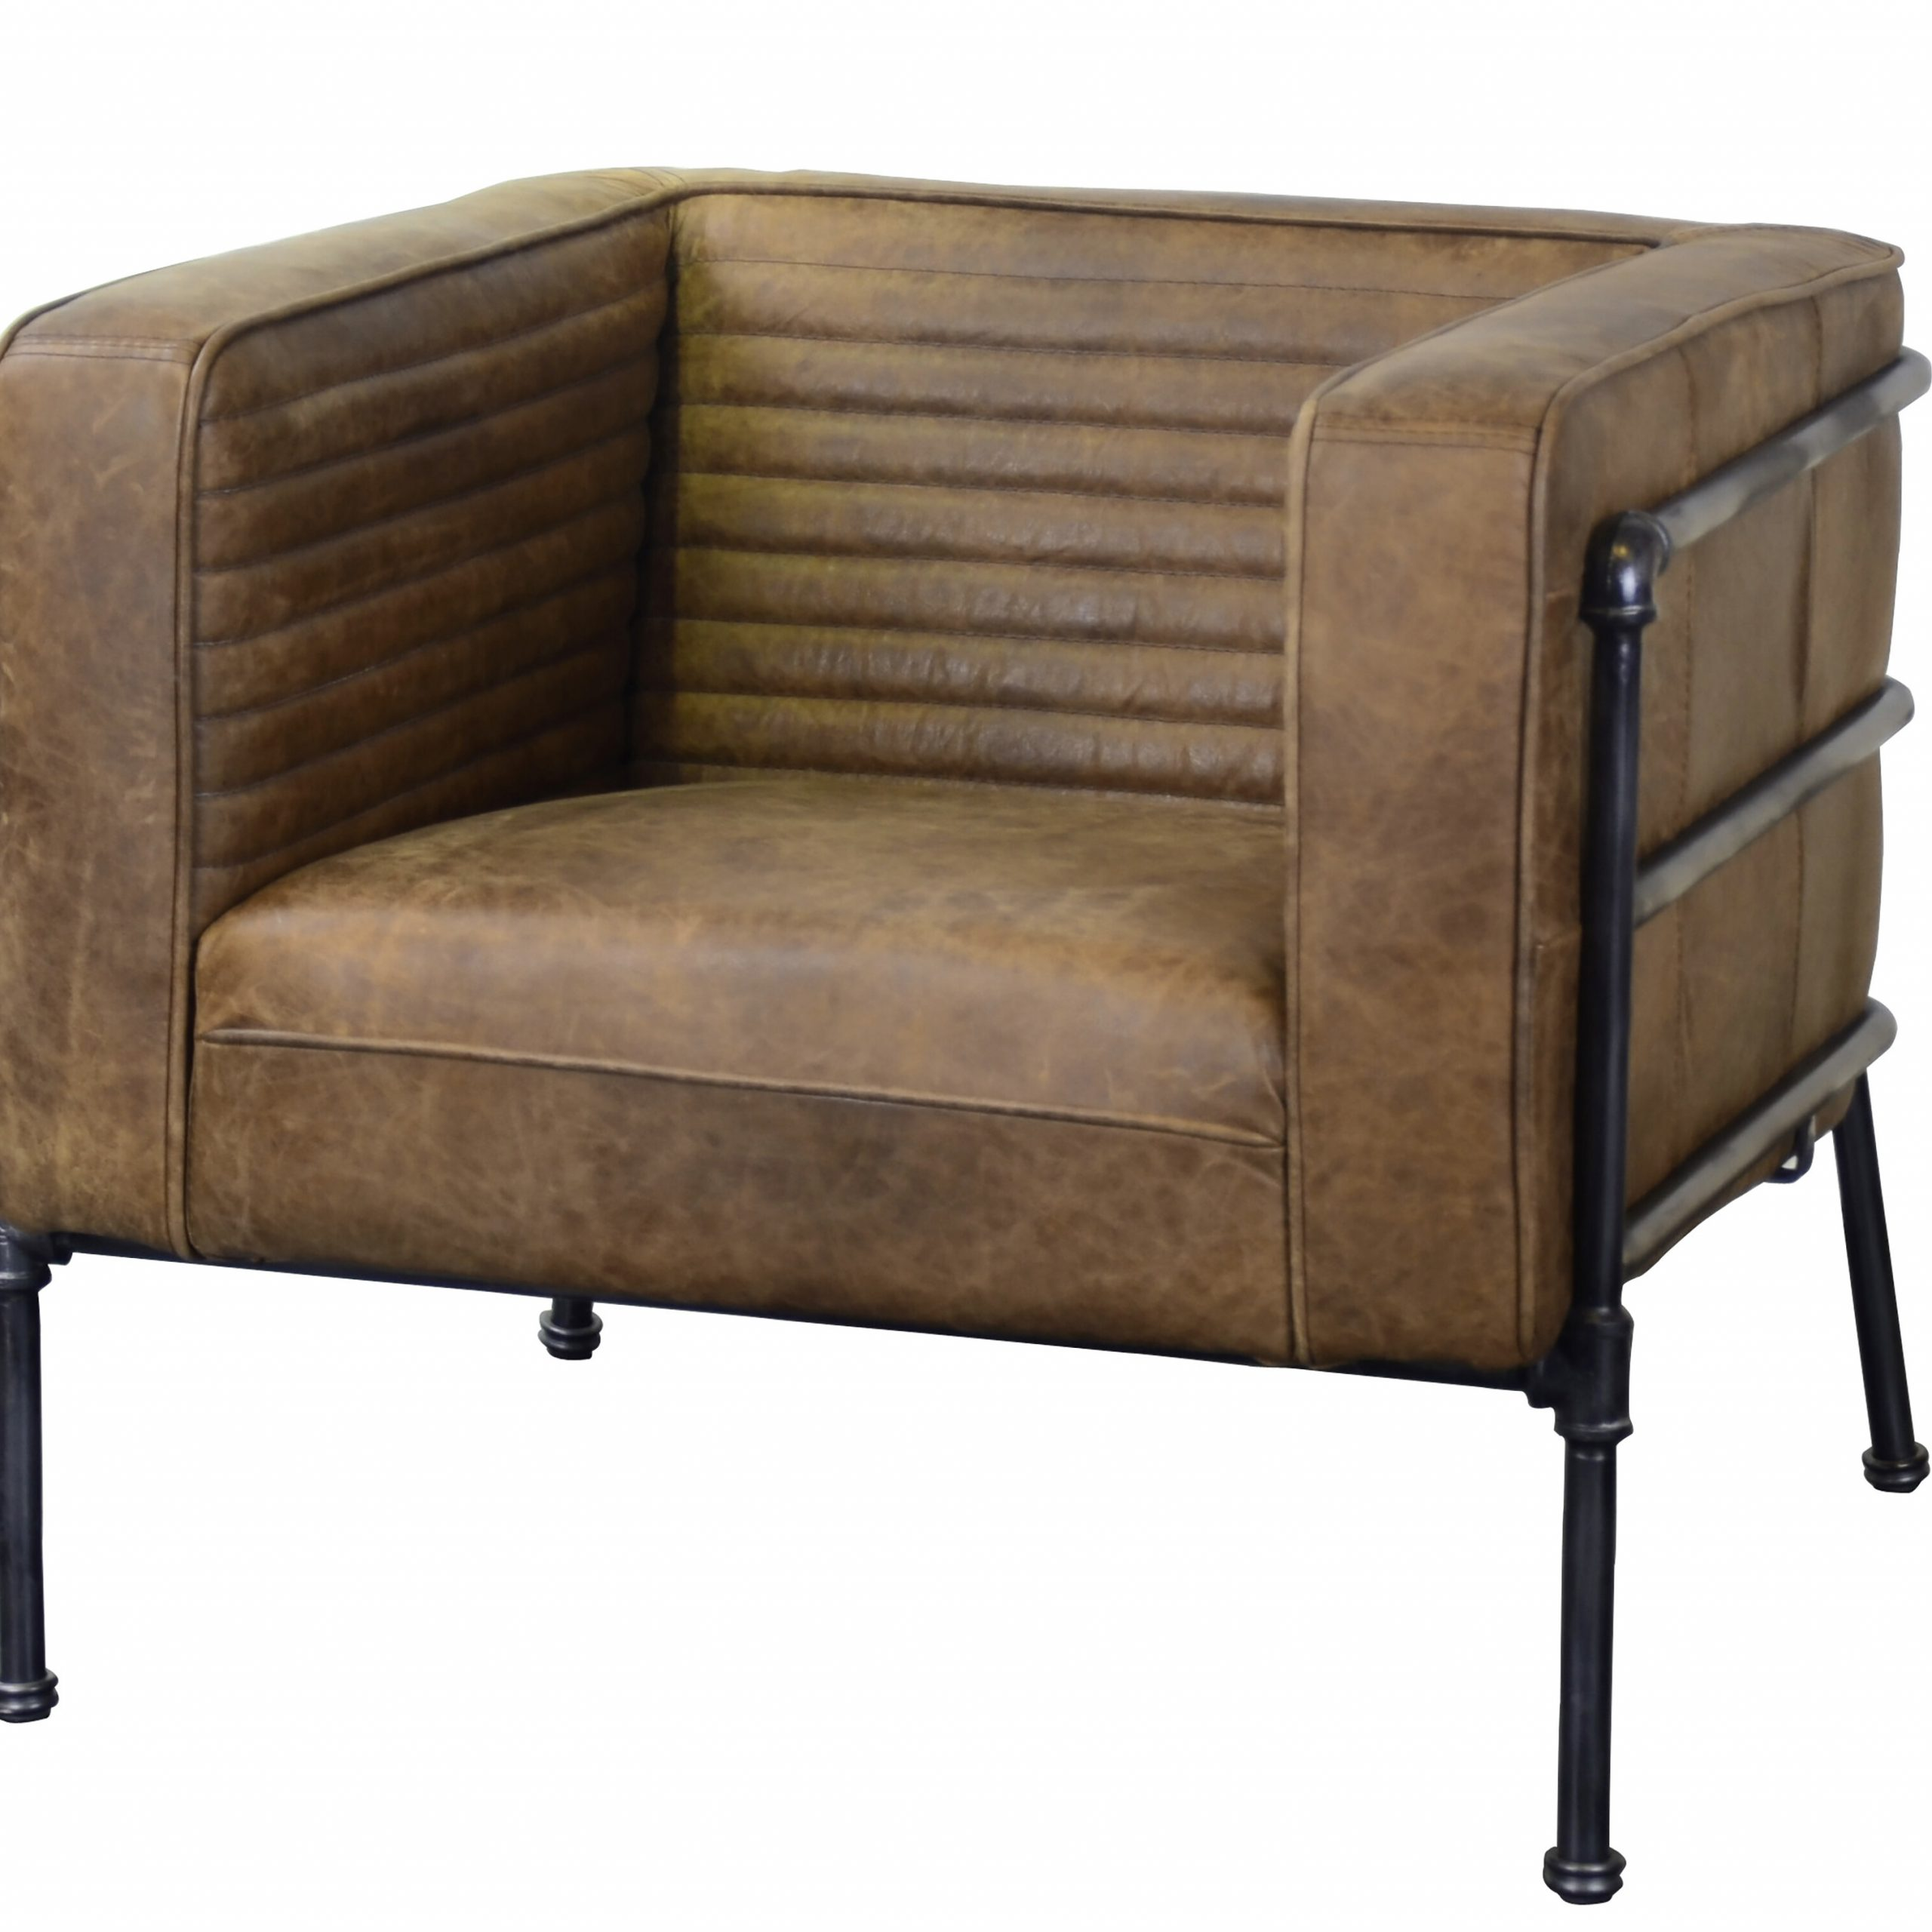 """Most Recent Shearer 31"""" W Tufted Top Grain Leather Club Chair In Sheldon Tufted Top Grain Leather Club Chairs (View 2 of 20)"""